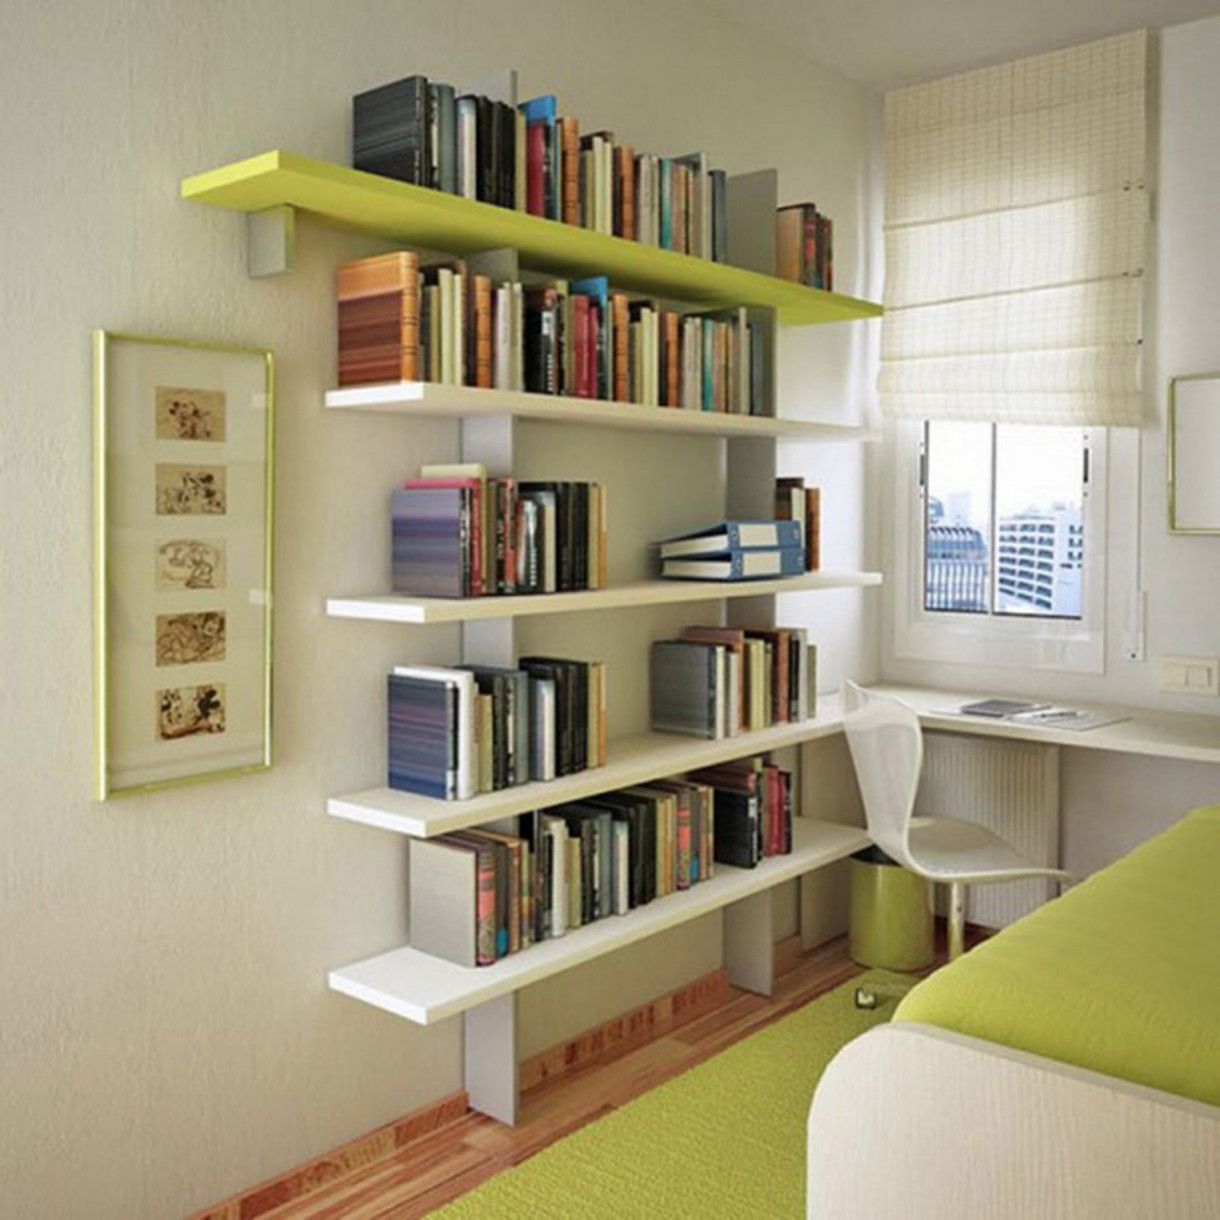 Charming Wall Shelves Storage Ideas For Small Apartment